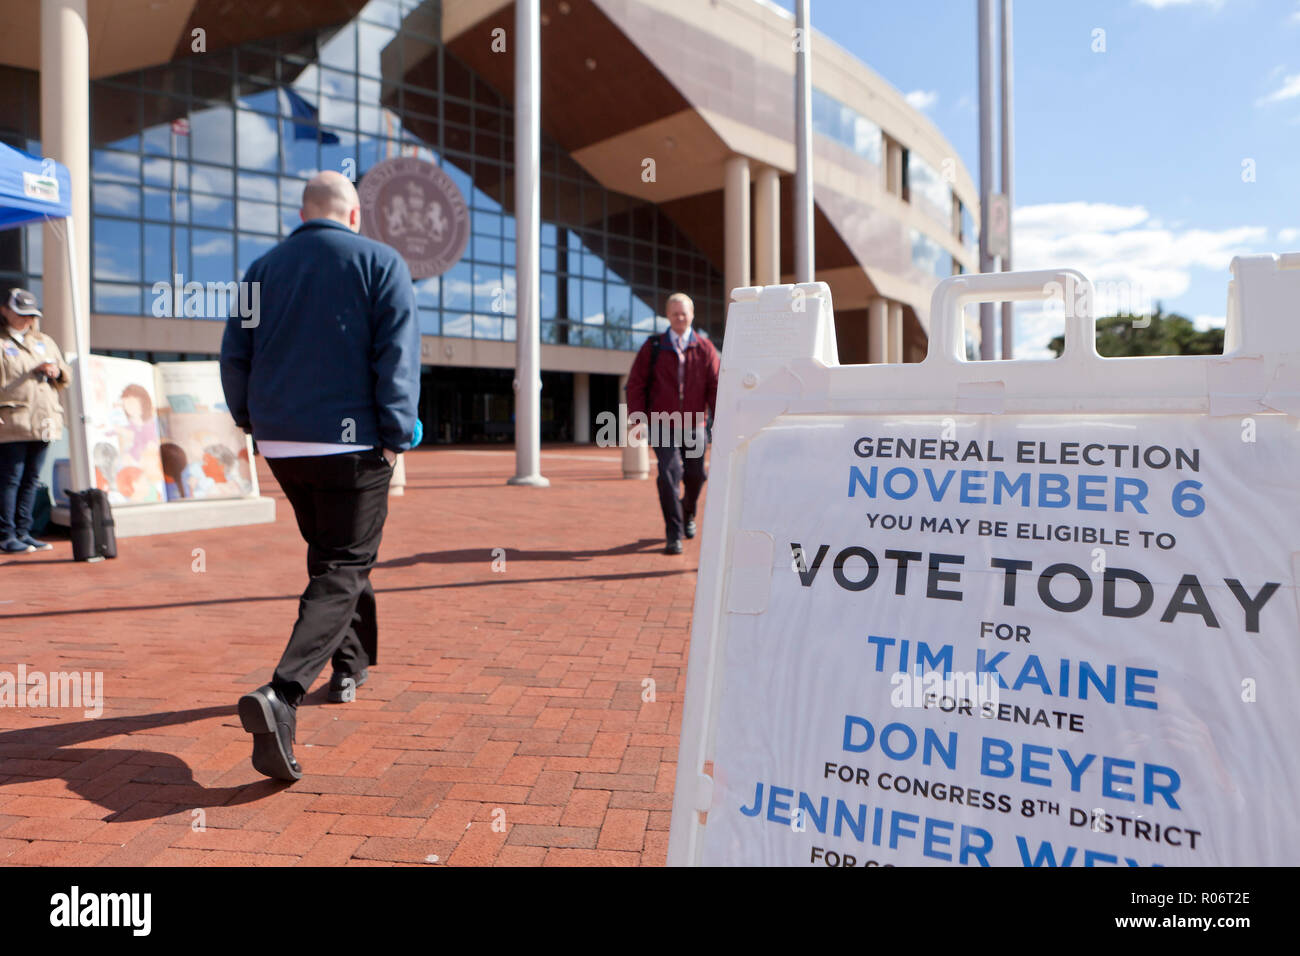 October 24th, 2018, Fairfax County, Virginia USA: Absentee voting (early voting) during midterm elections - USA - Stock Image